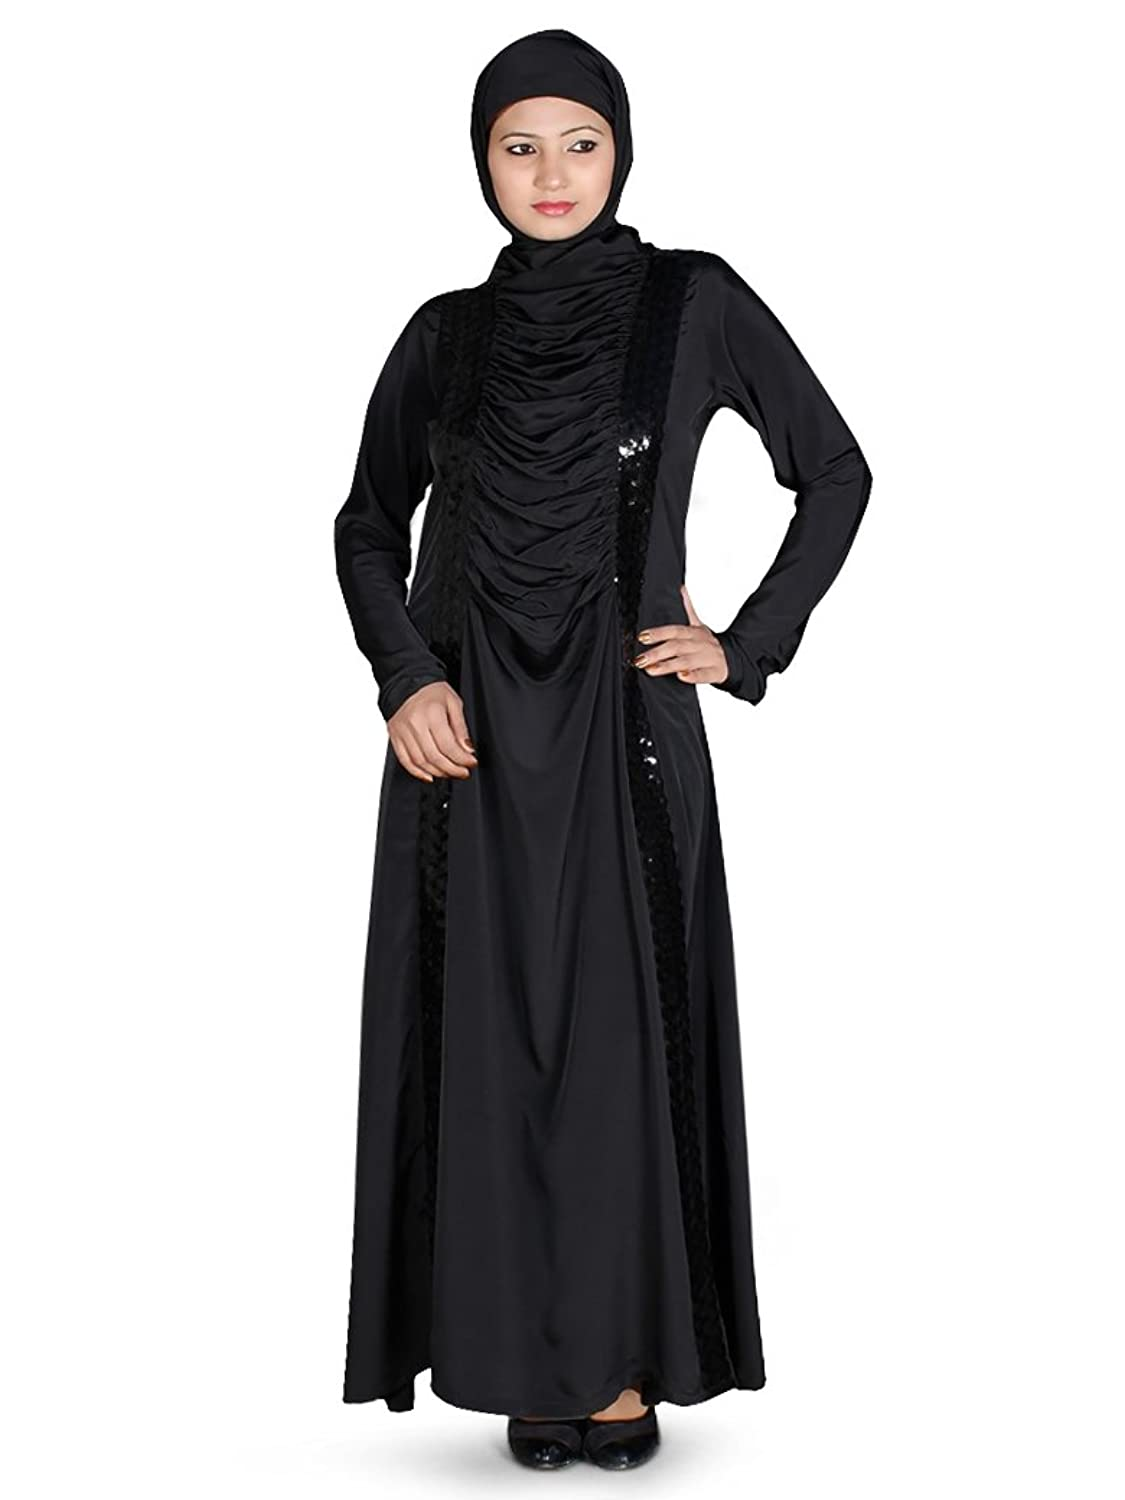 MyBatua Women's Islamic Clothing Buy Abaya Online in Black